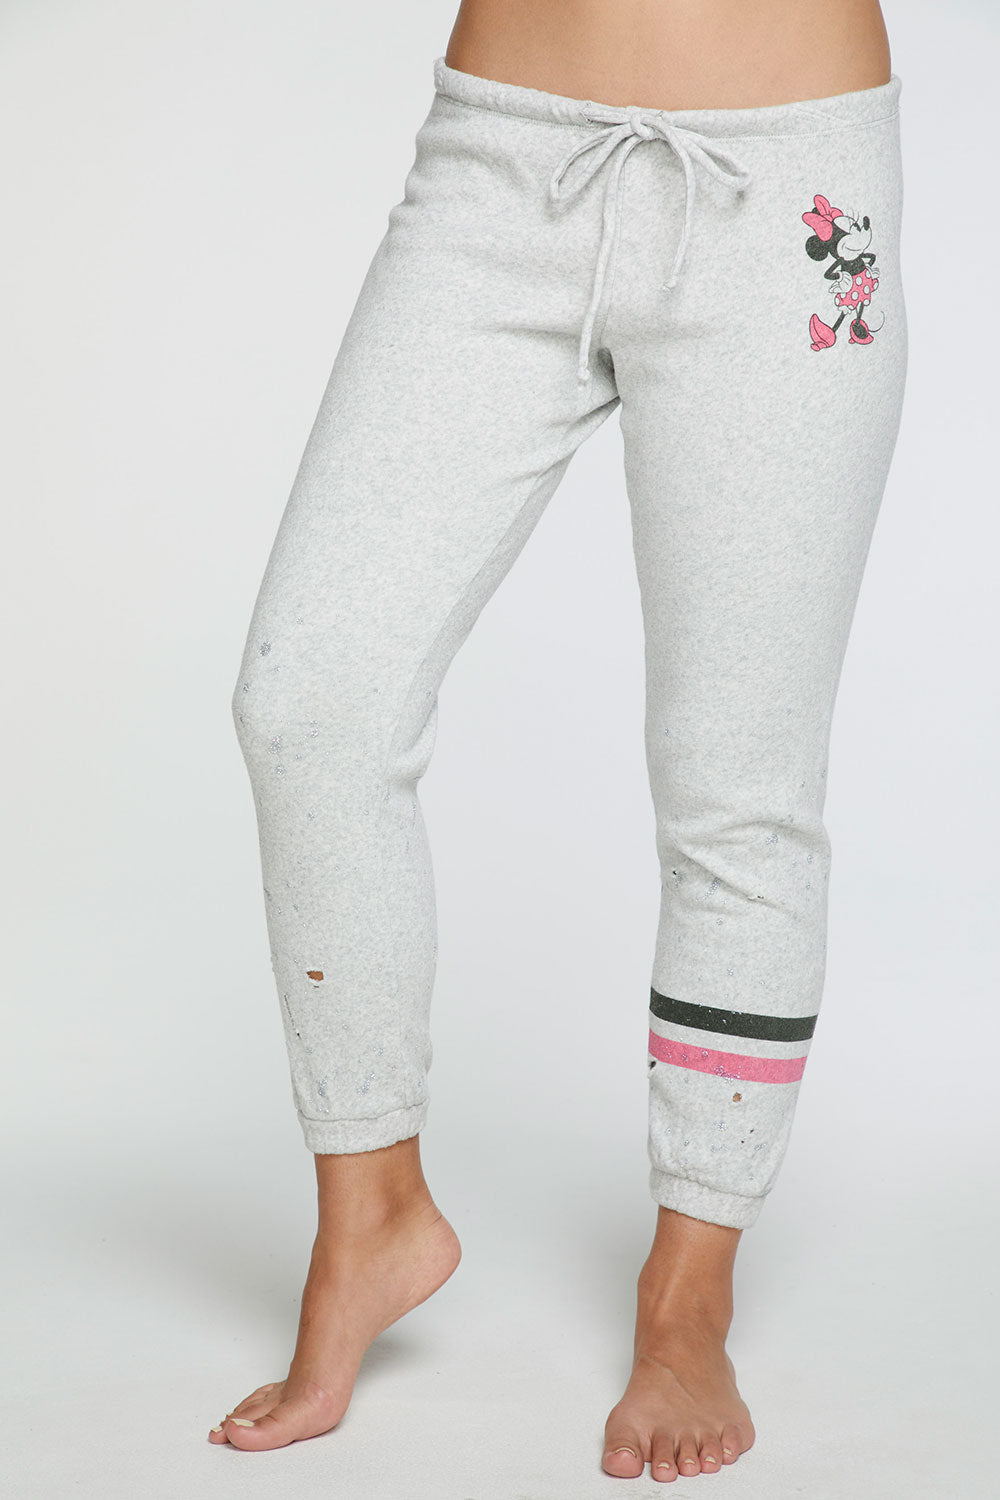 Disney's Minnie Mouse - Minnie Bow Pants WOMENS chaserbrand4.myshopify.com